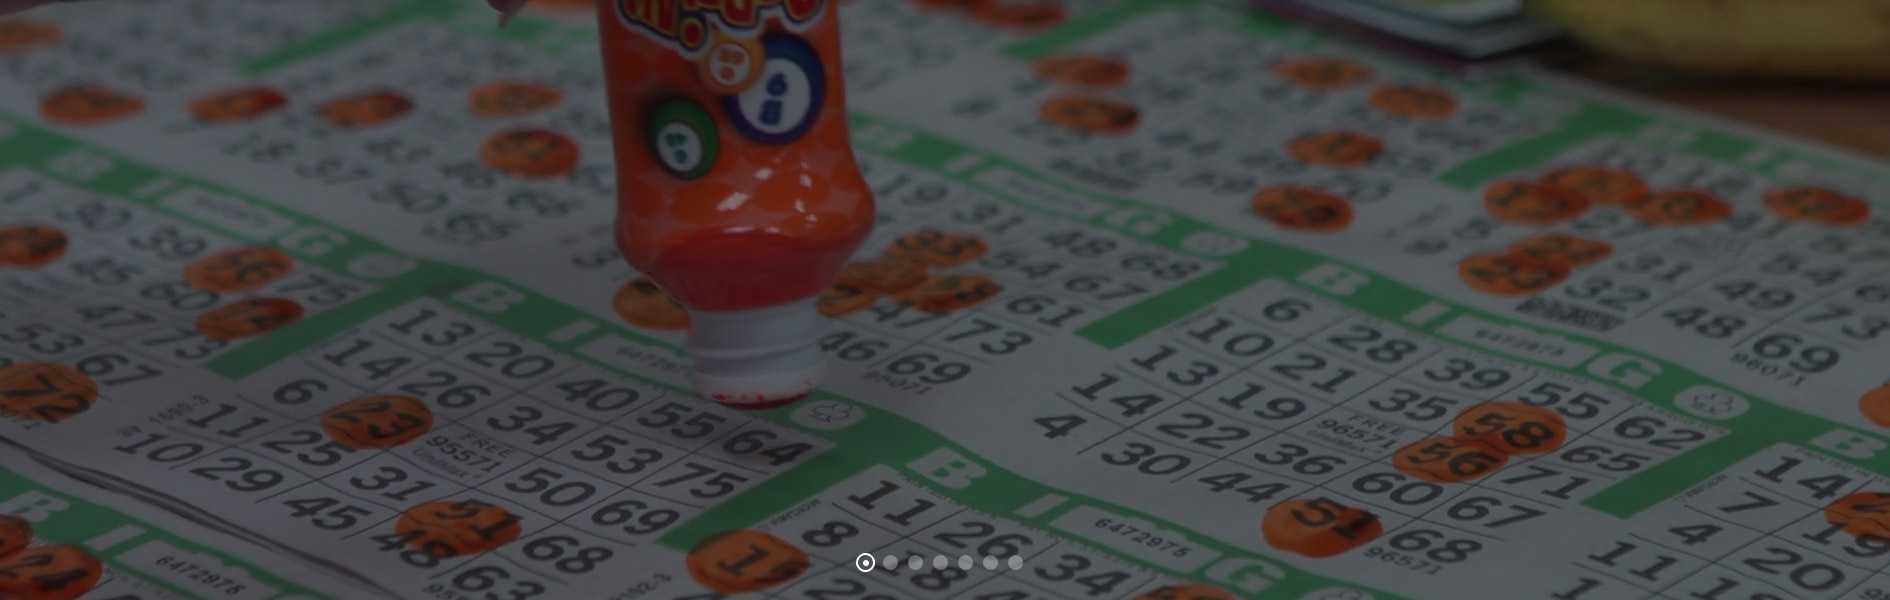 Bingo Dauber and Paper Background